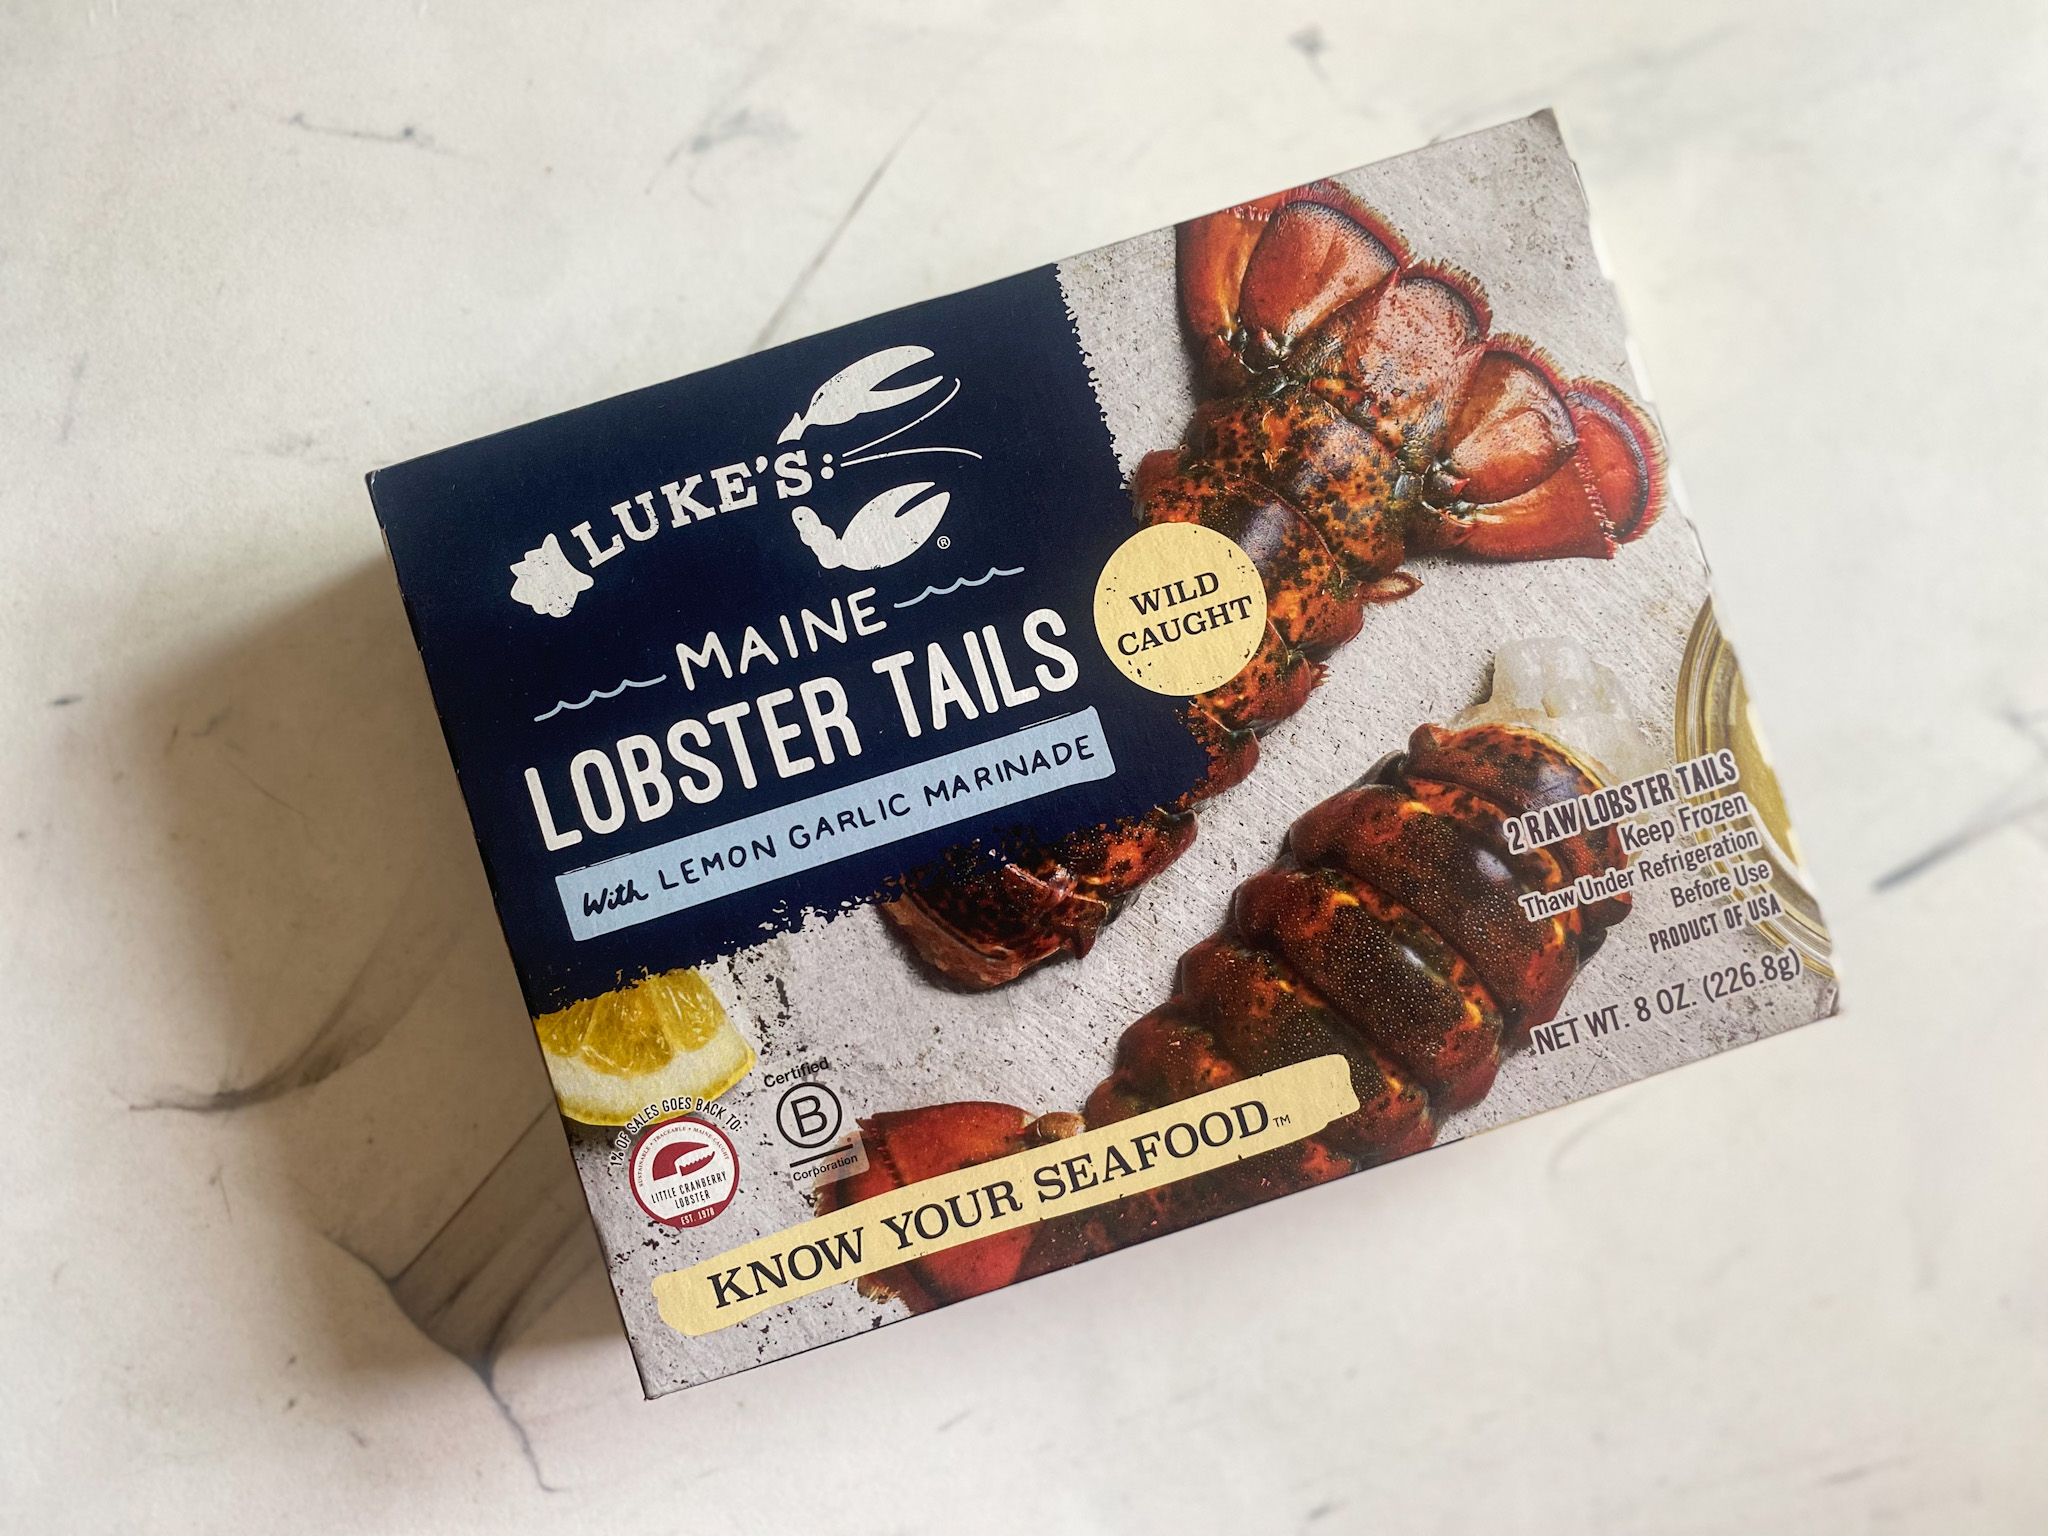 Luke's Lobster from the frozen section at Rollin' Oats